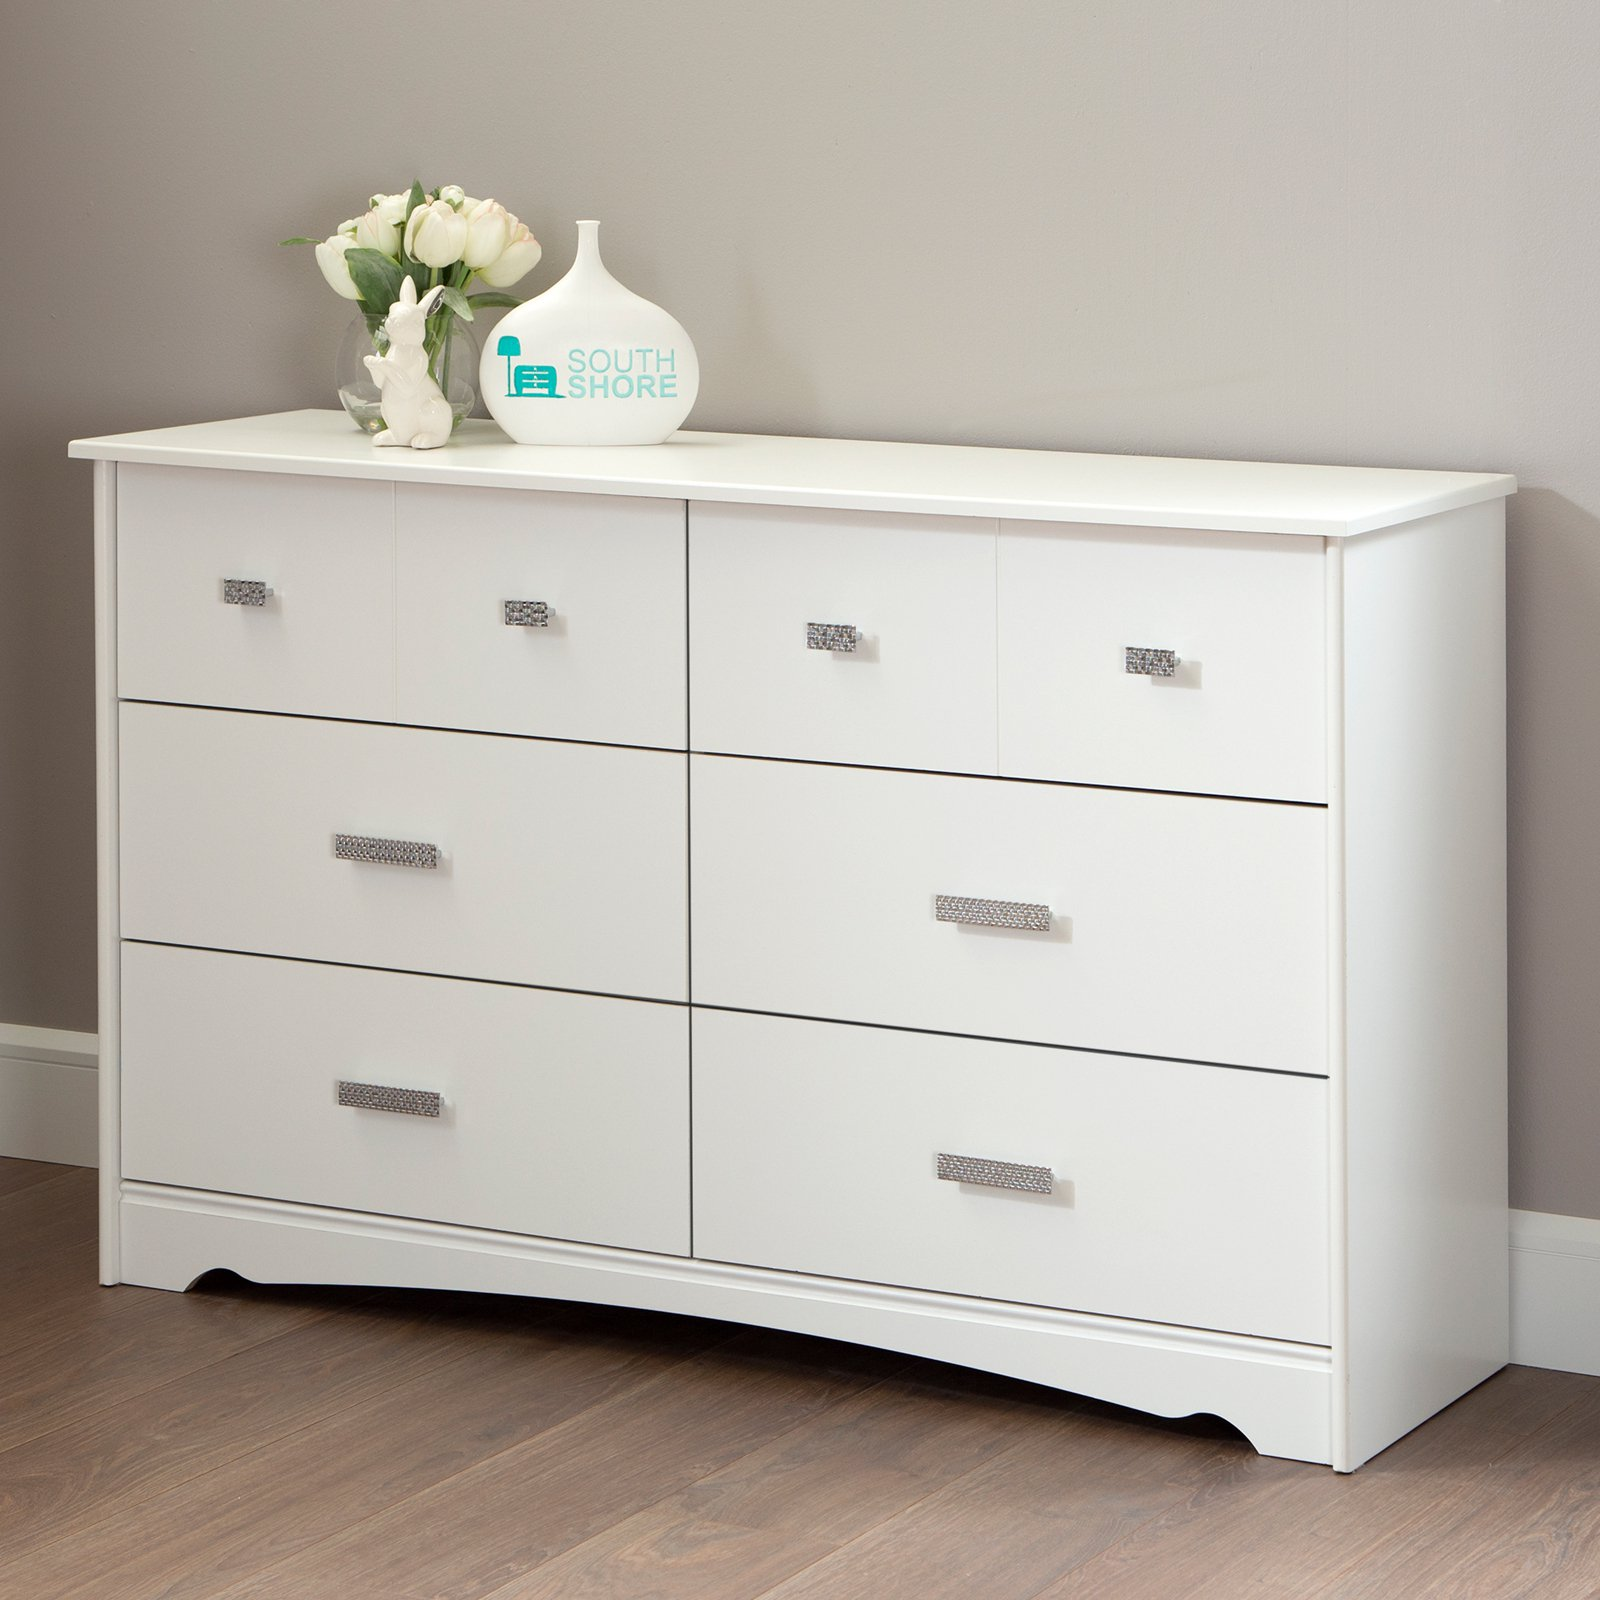 South Shore Tiara 6-Drawer Double Dresser, White